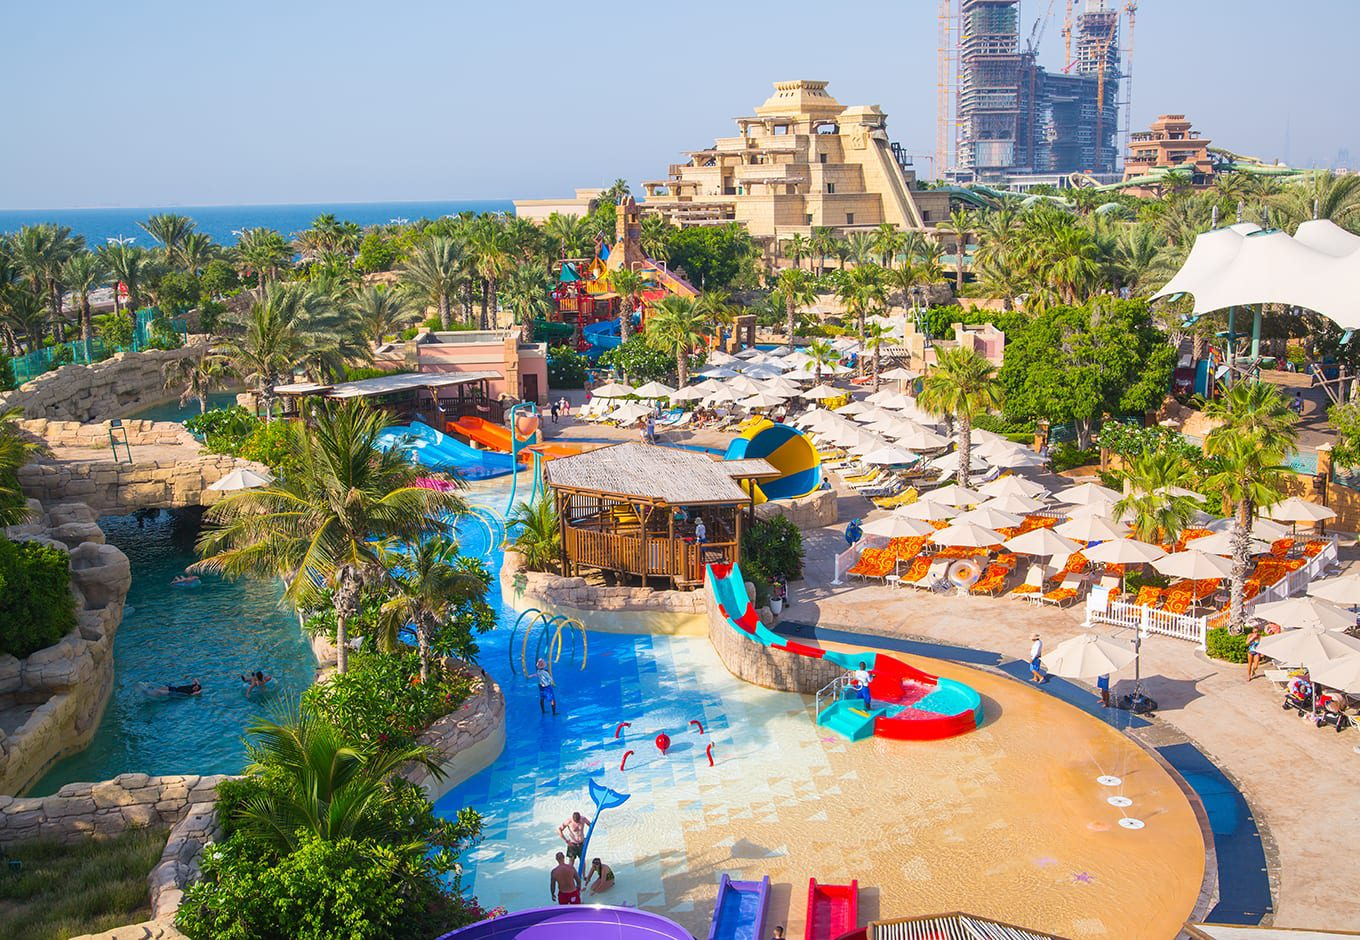 The waterslides and pools surrounded by trees at the Aquaventure, Waterpark, Dubai.